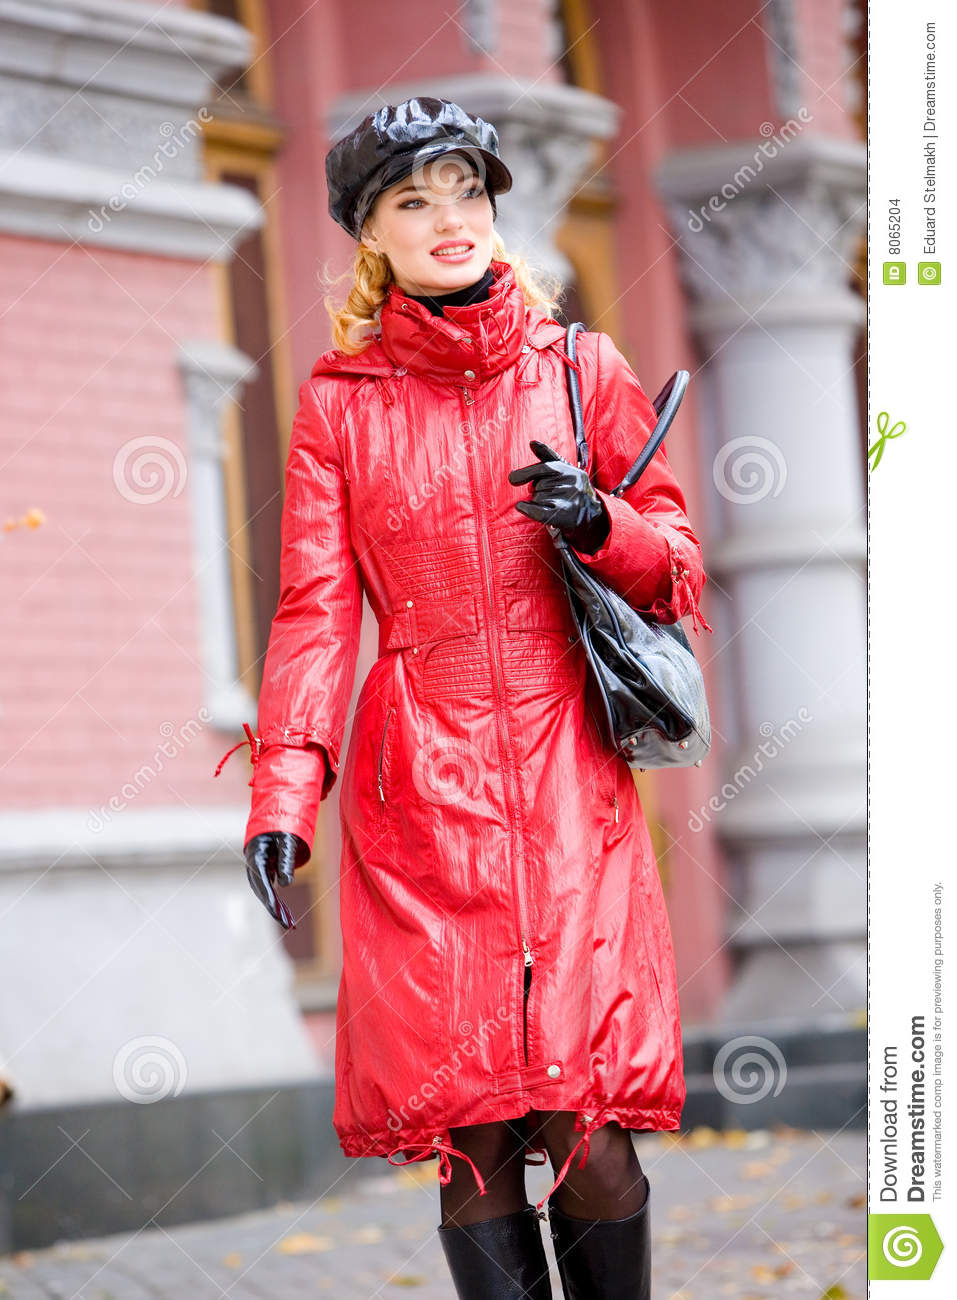 Beautiful smiling girl in red coats and hat